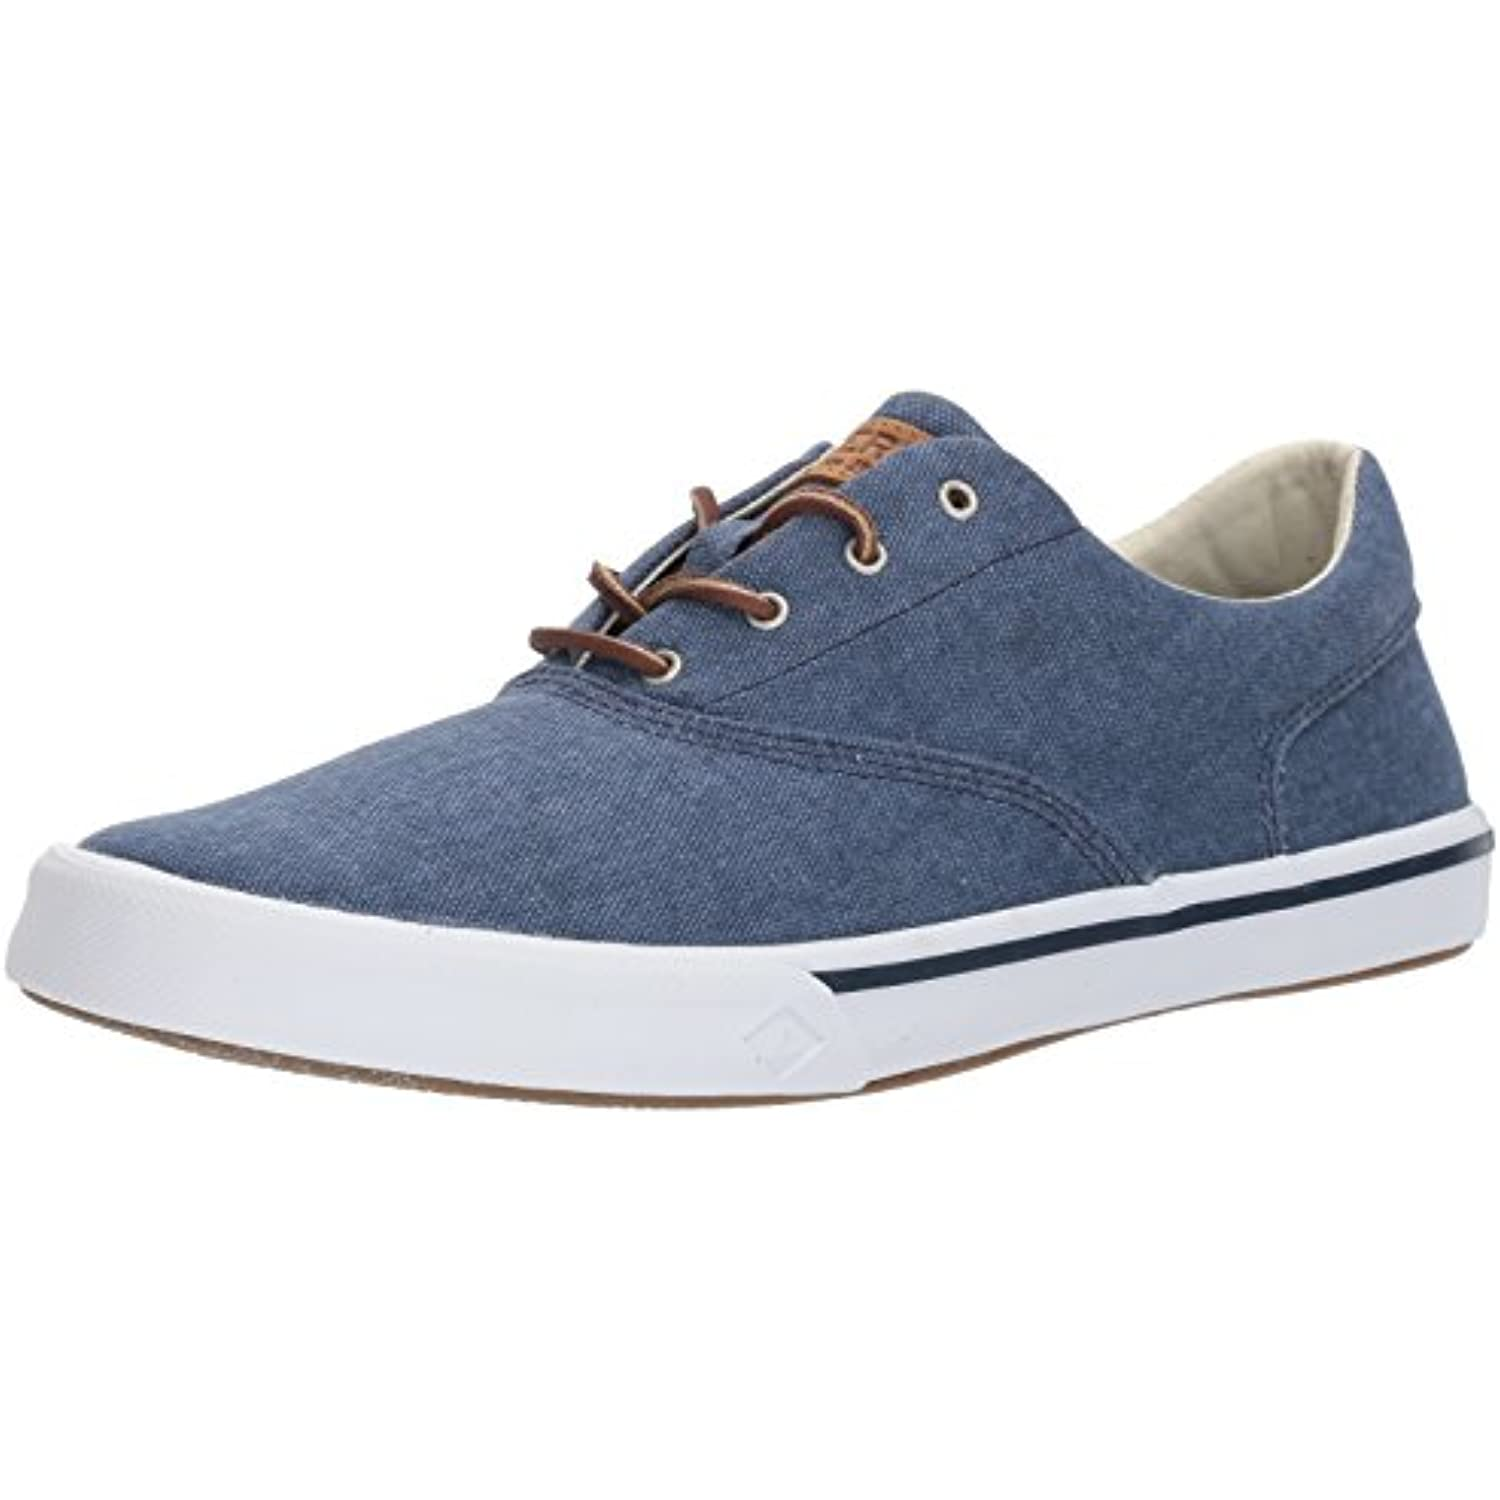 Sperry Striper II CVO Washed Parent Navy, Sneaker Uomo Parent Washed a23f2e